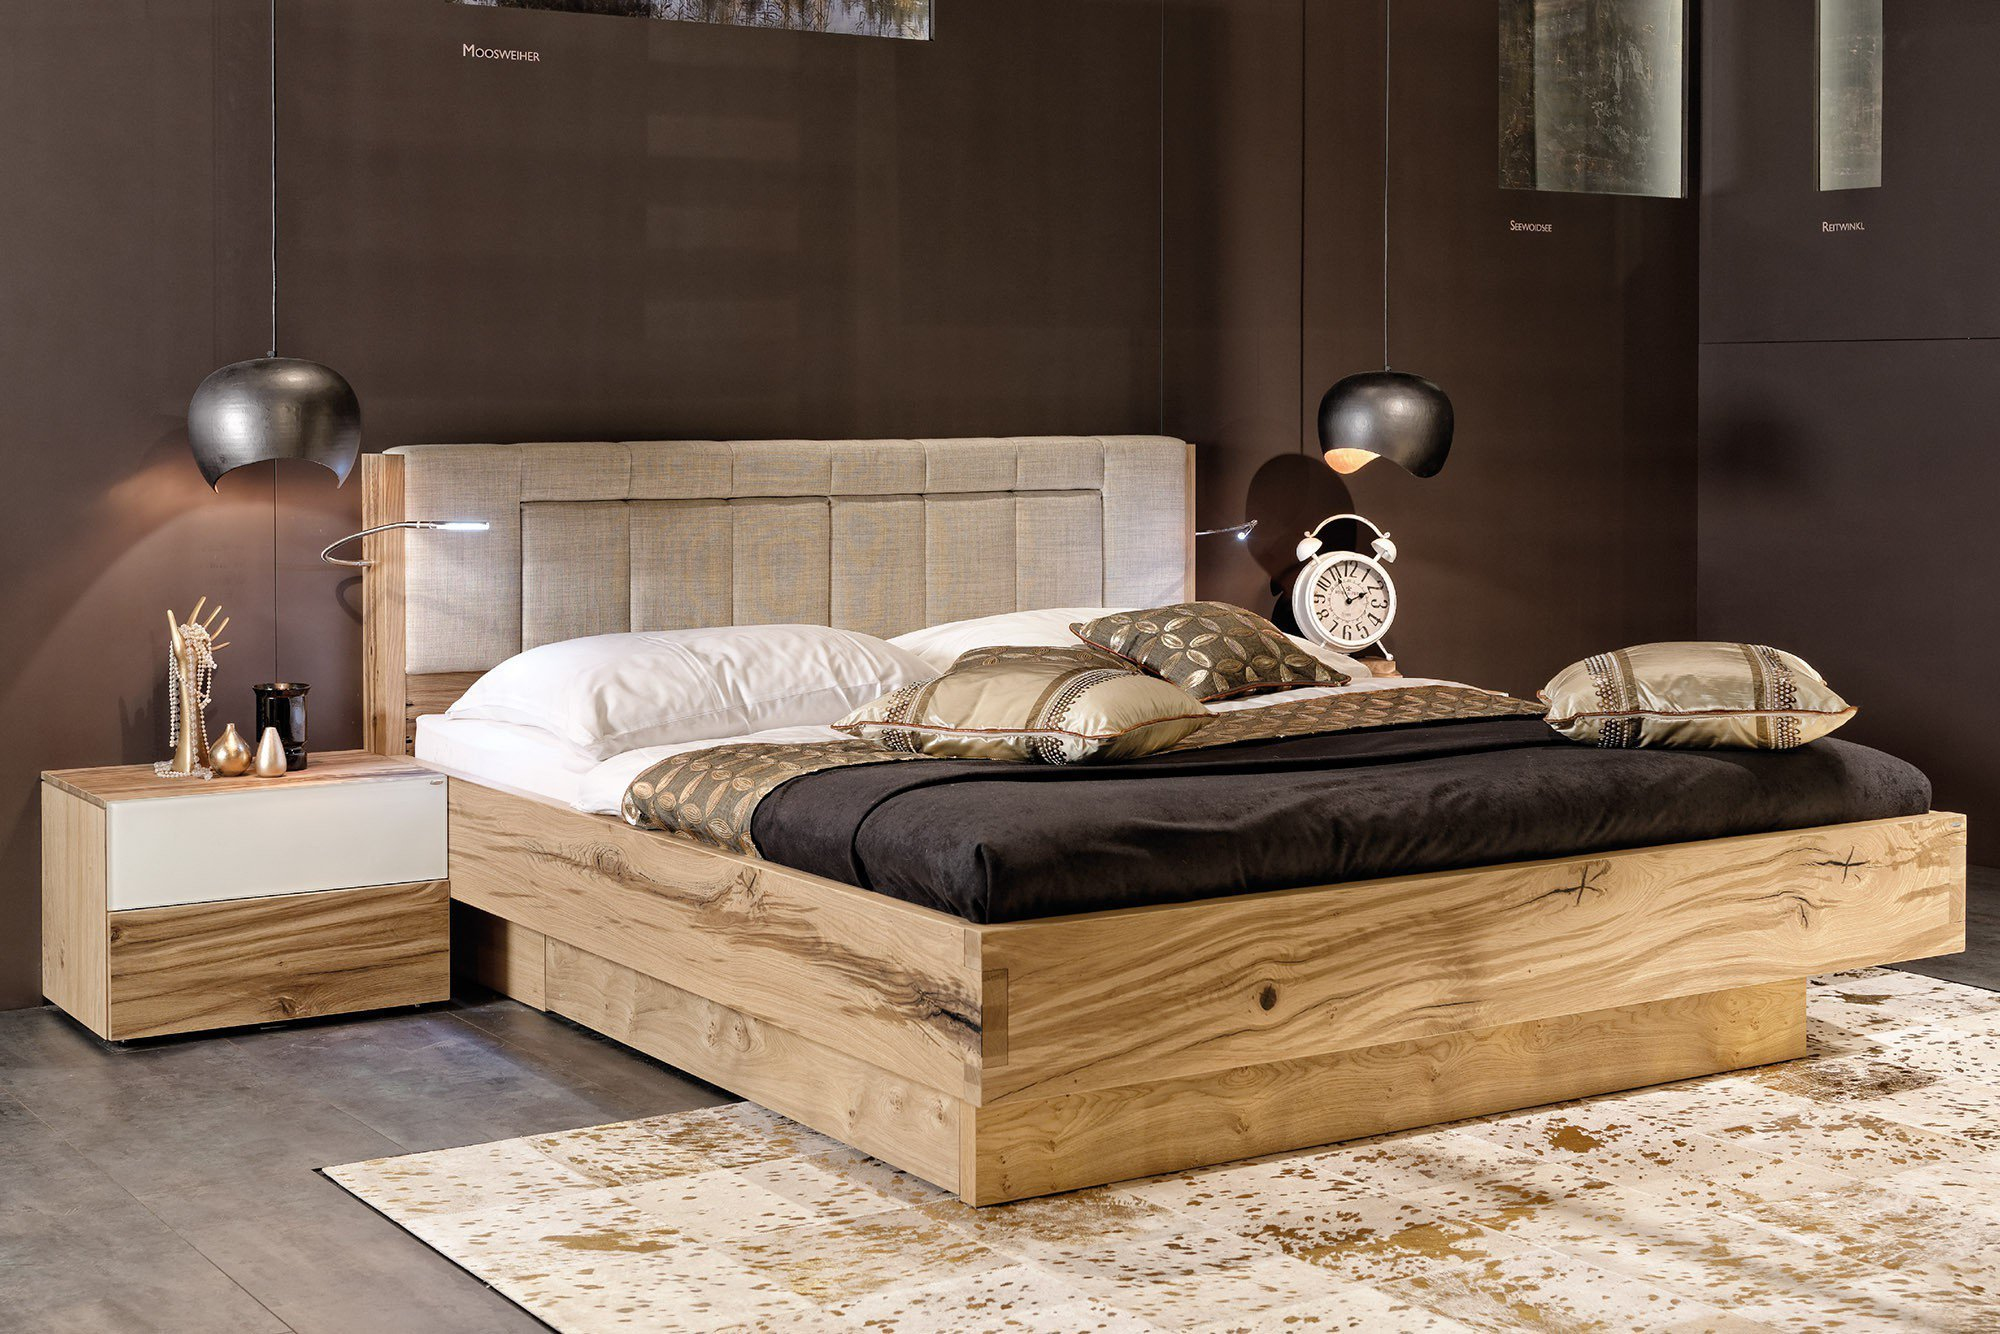 voglauer v pur bett eiche altholz polster m bel letz ihr online shop. Black Bedroom Furniture Sets. Home Design Ideas